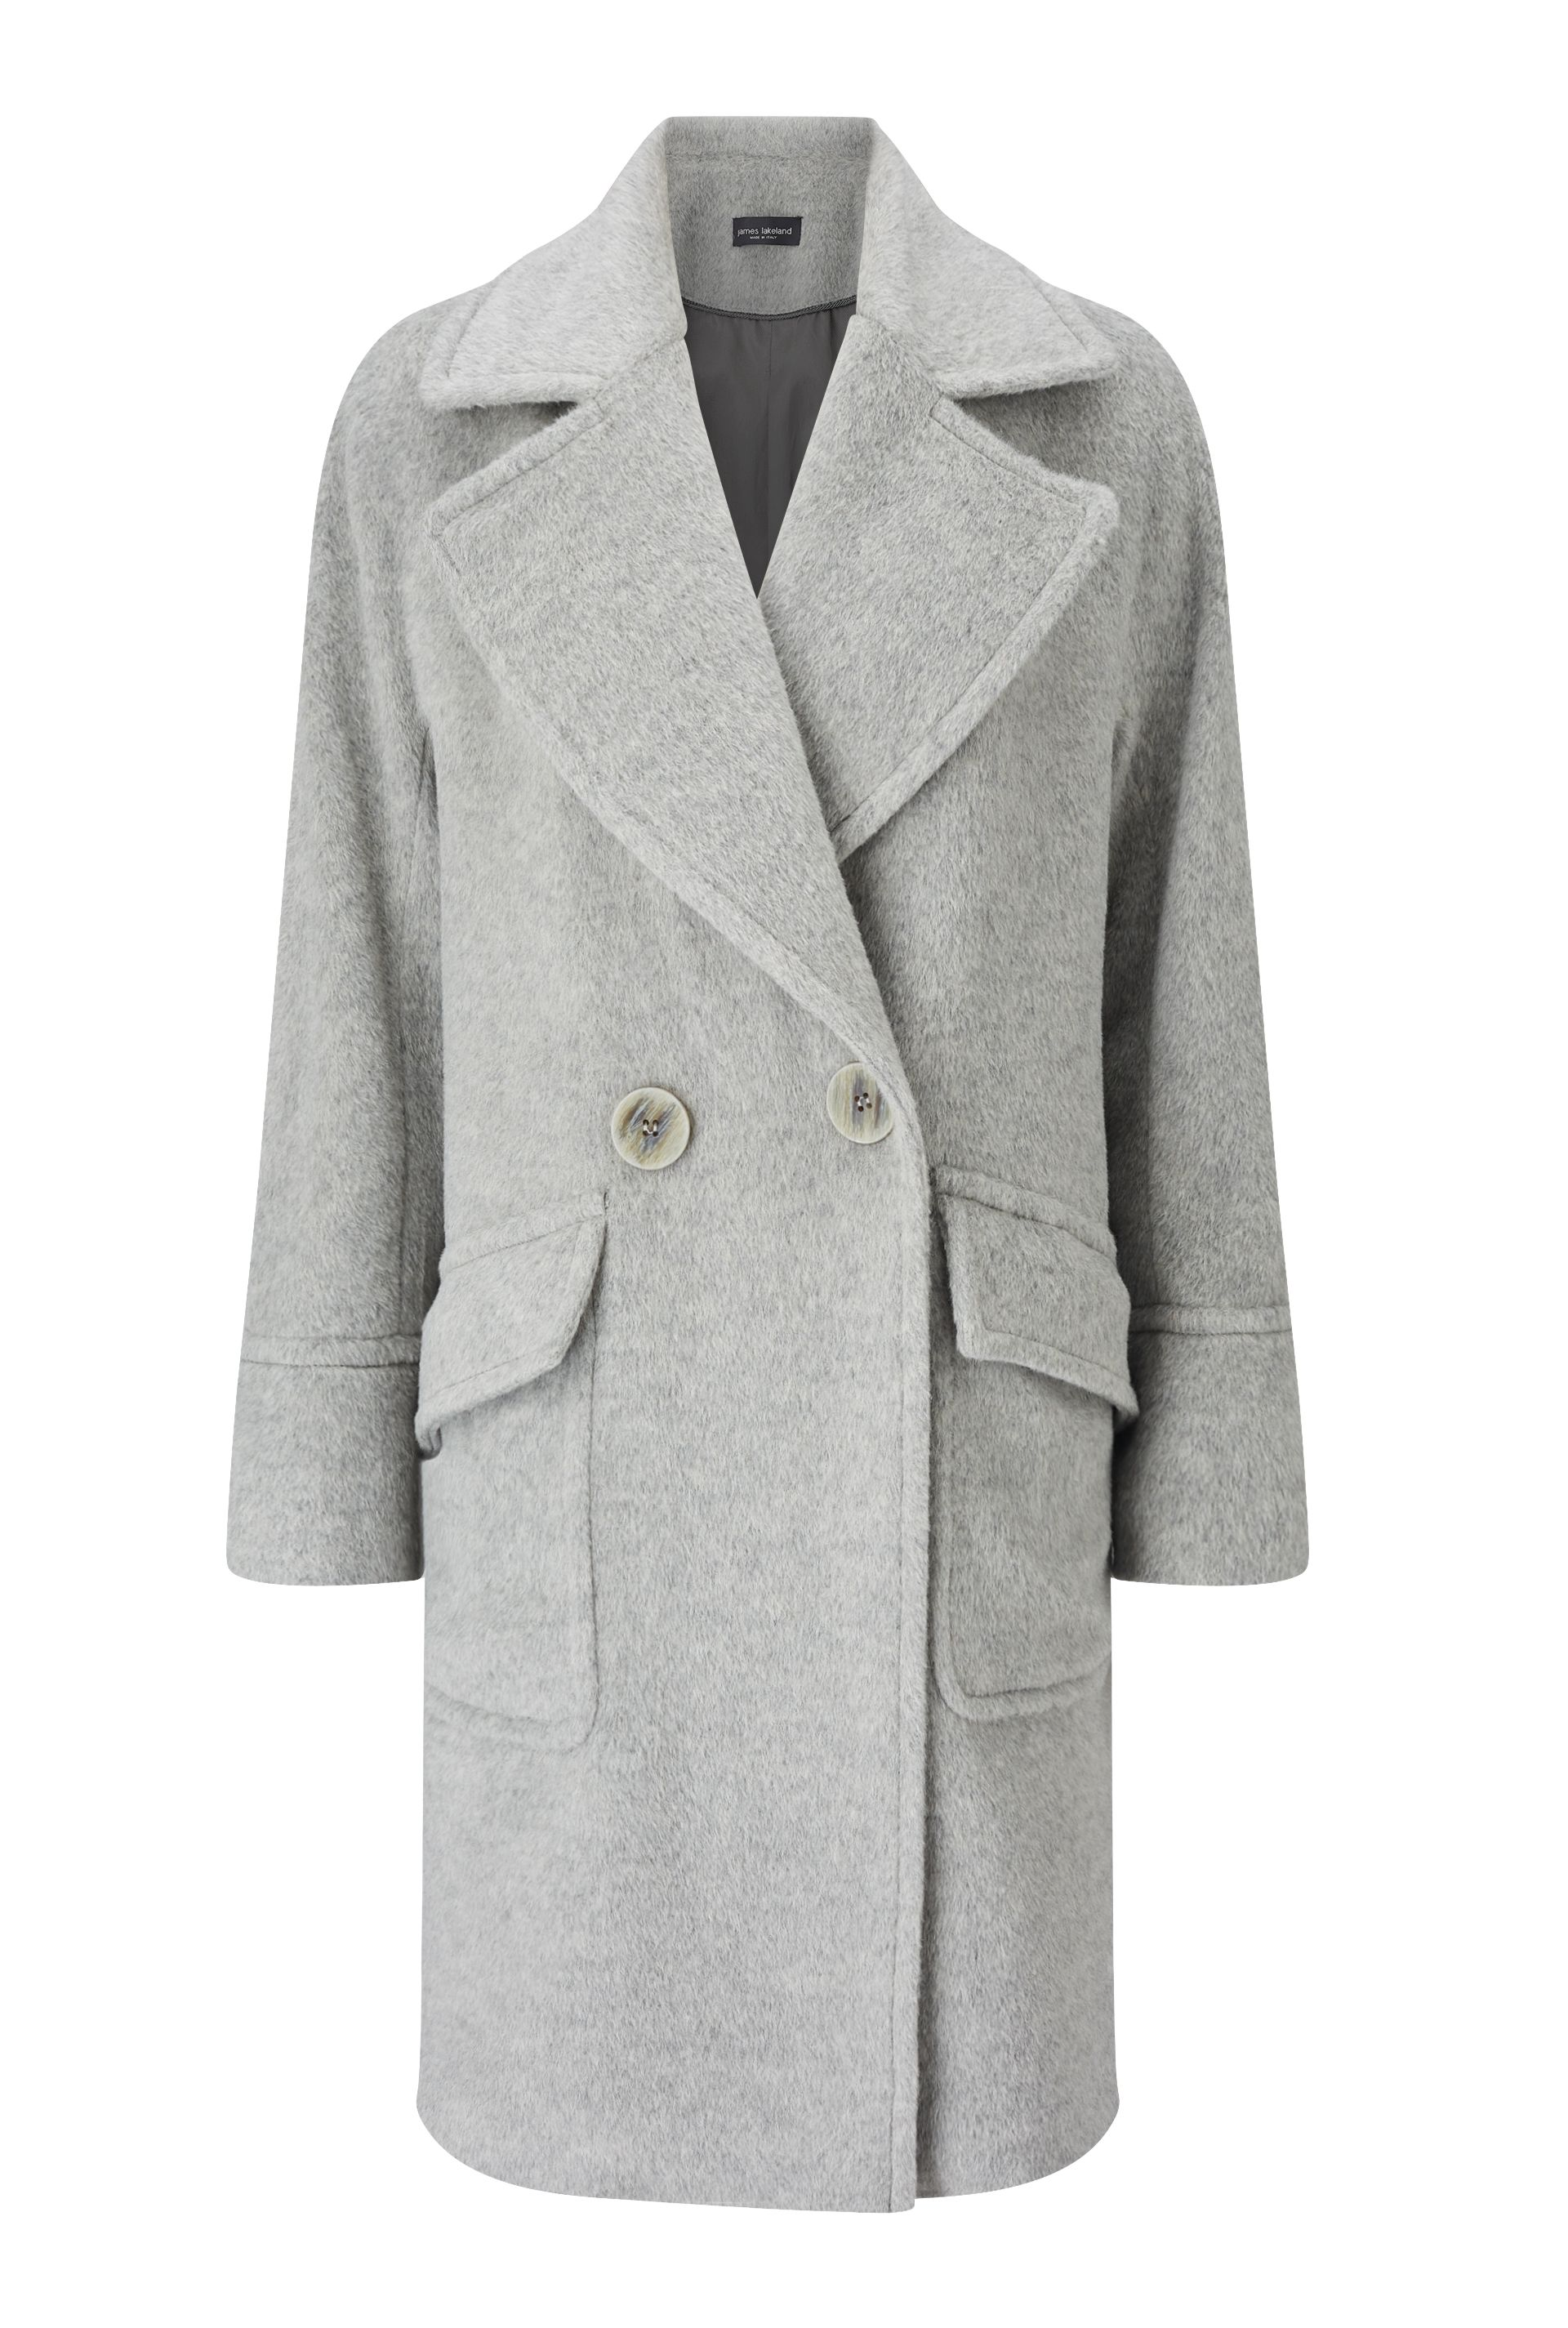 James Lakeland Drop Shoulder Coat Grey